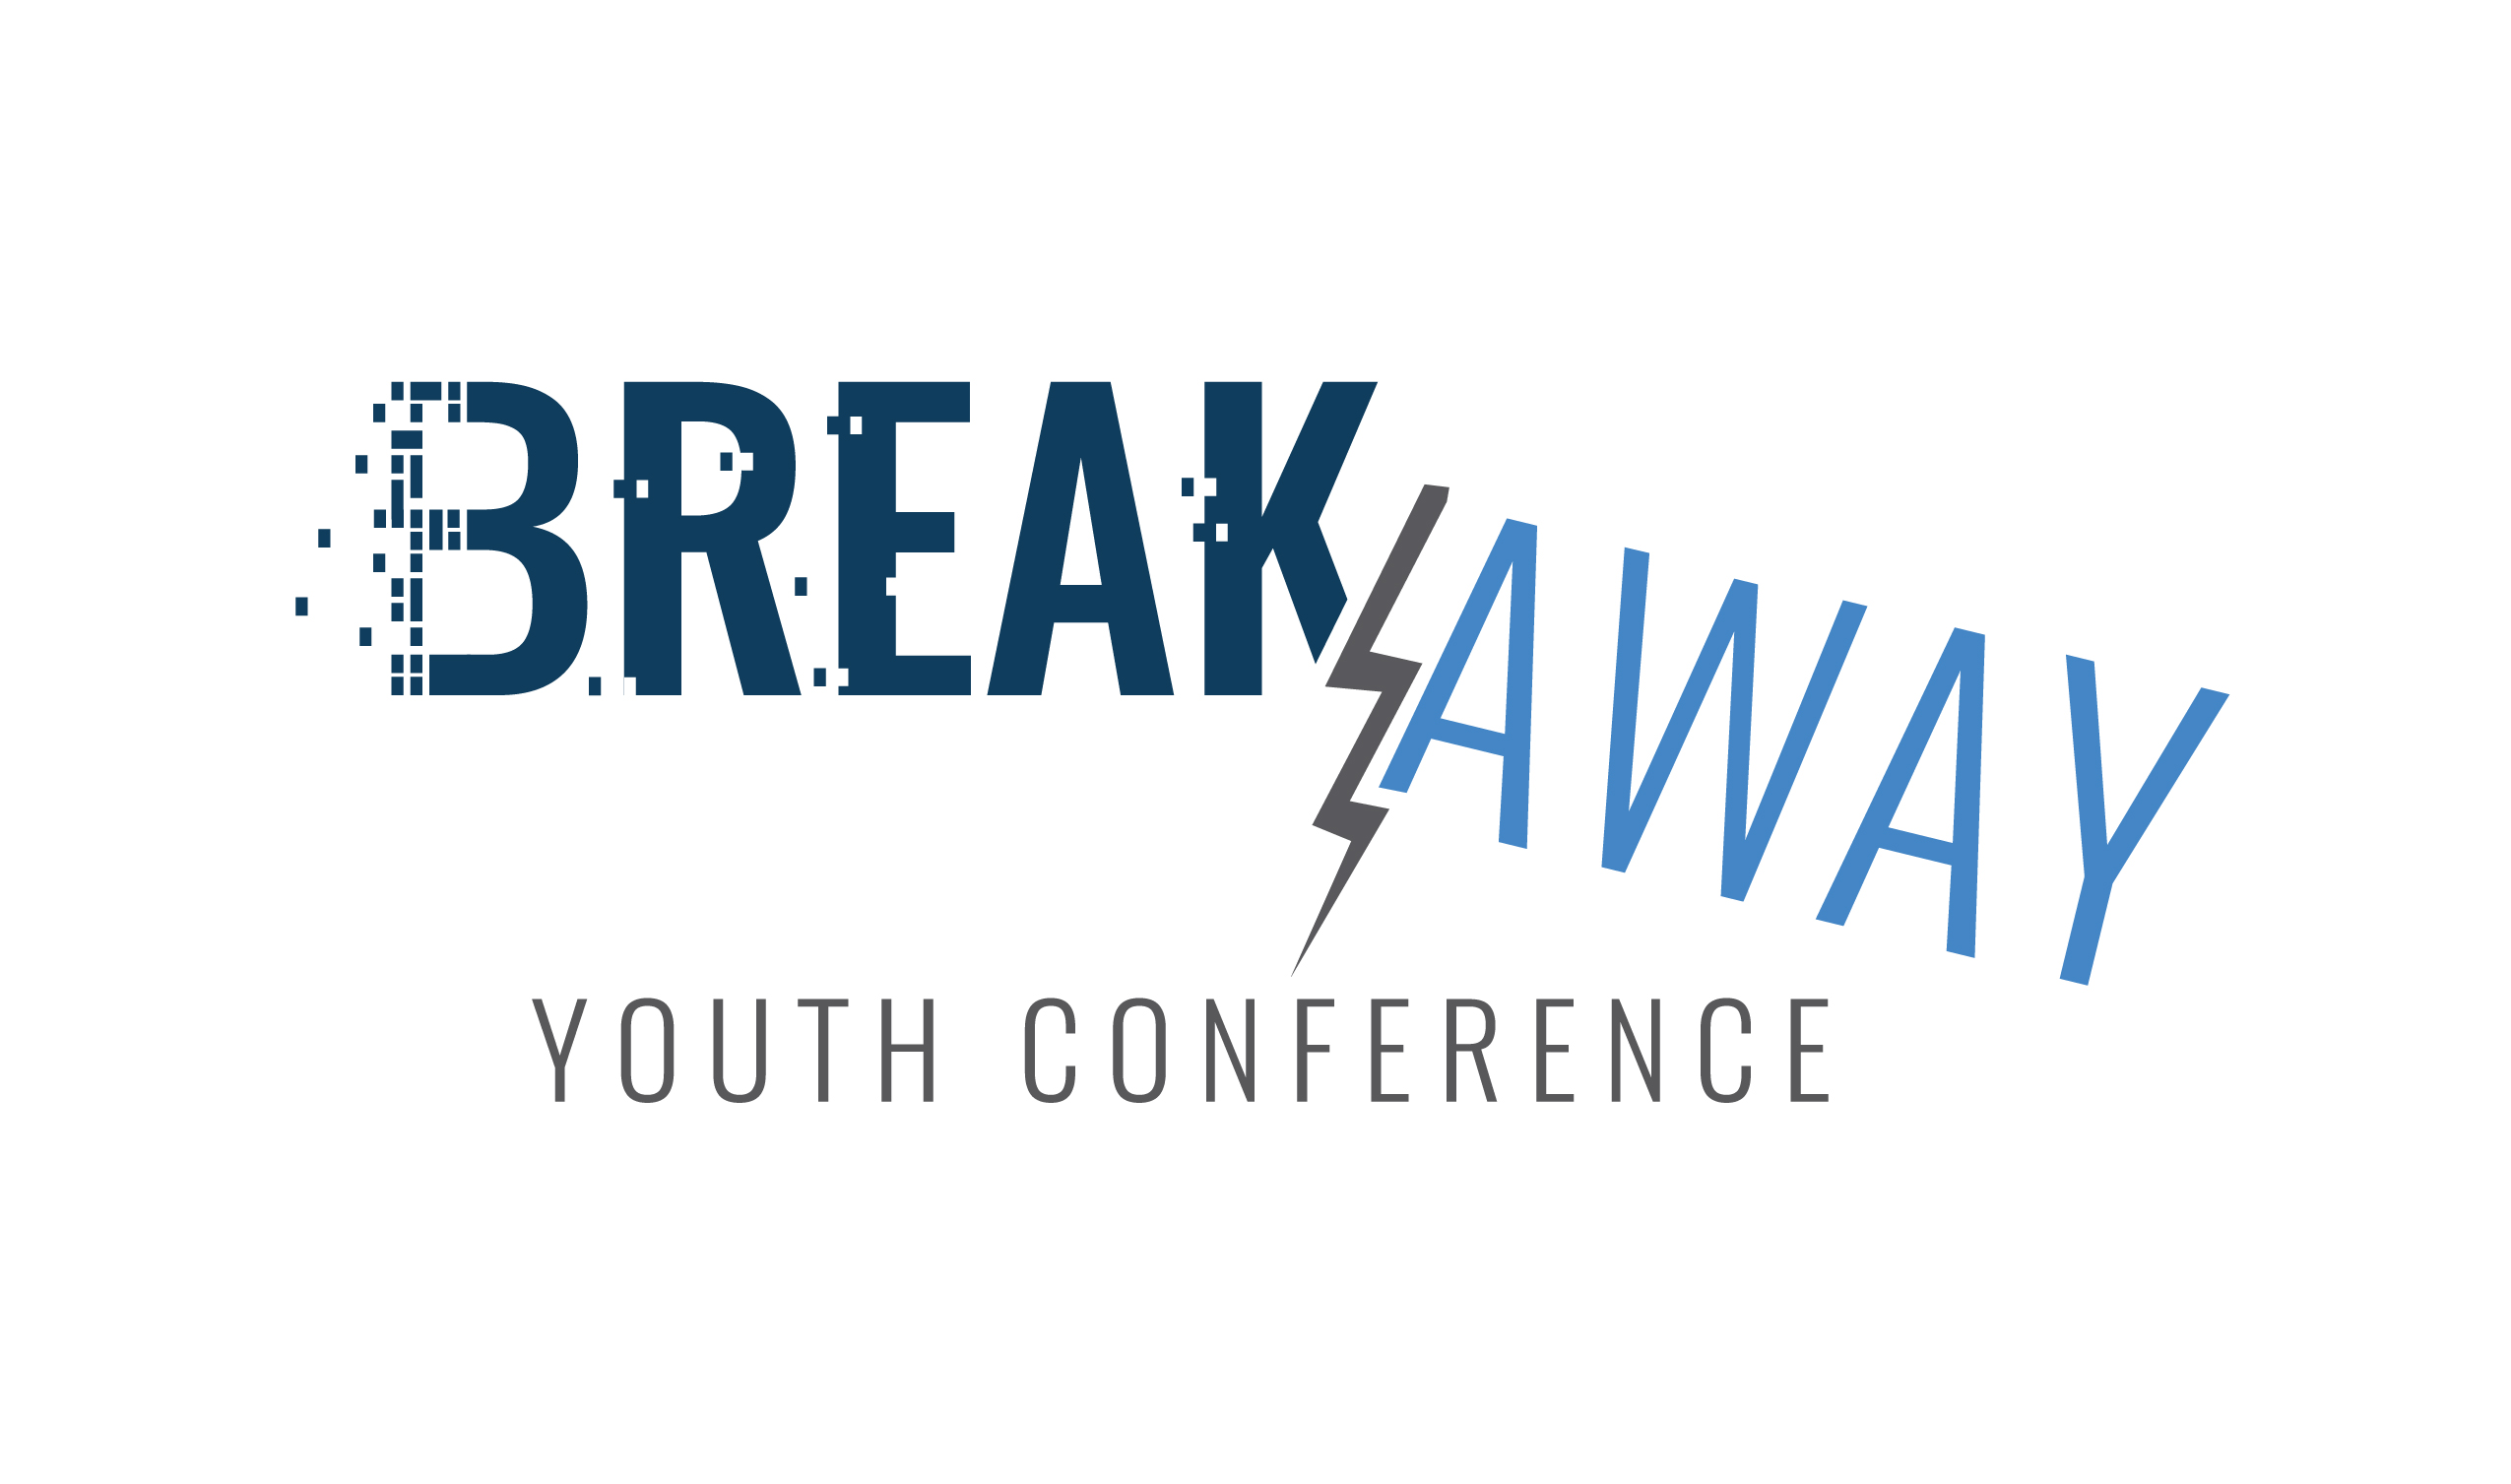 breakaway youth conference